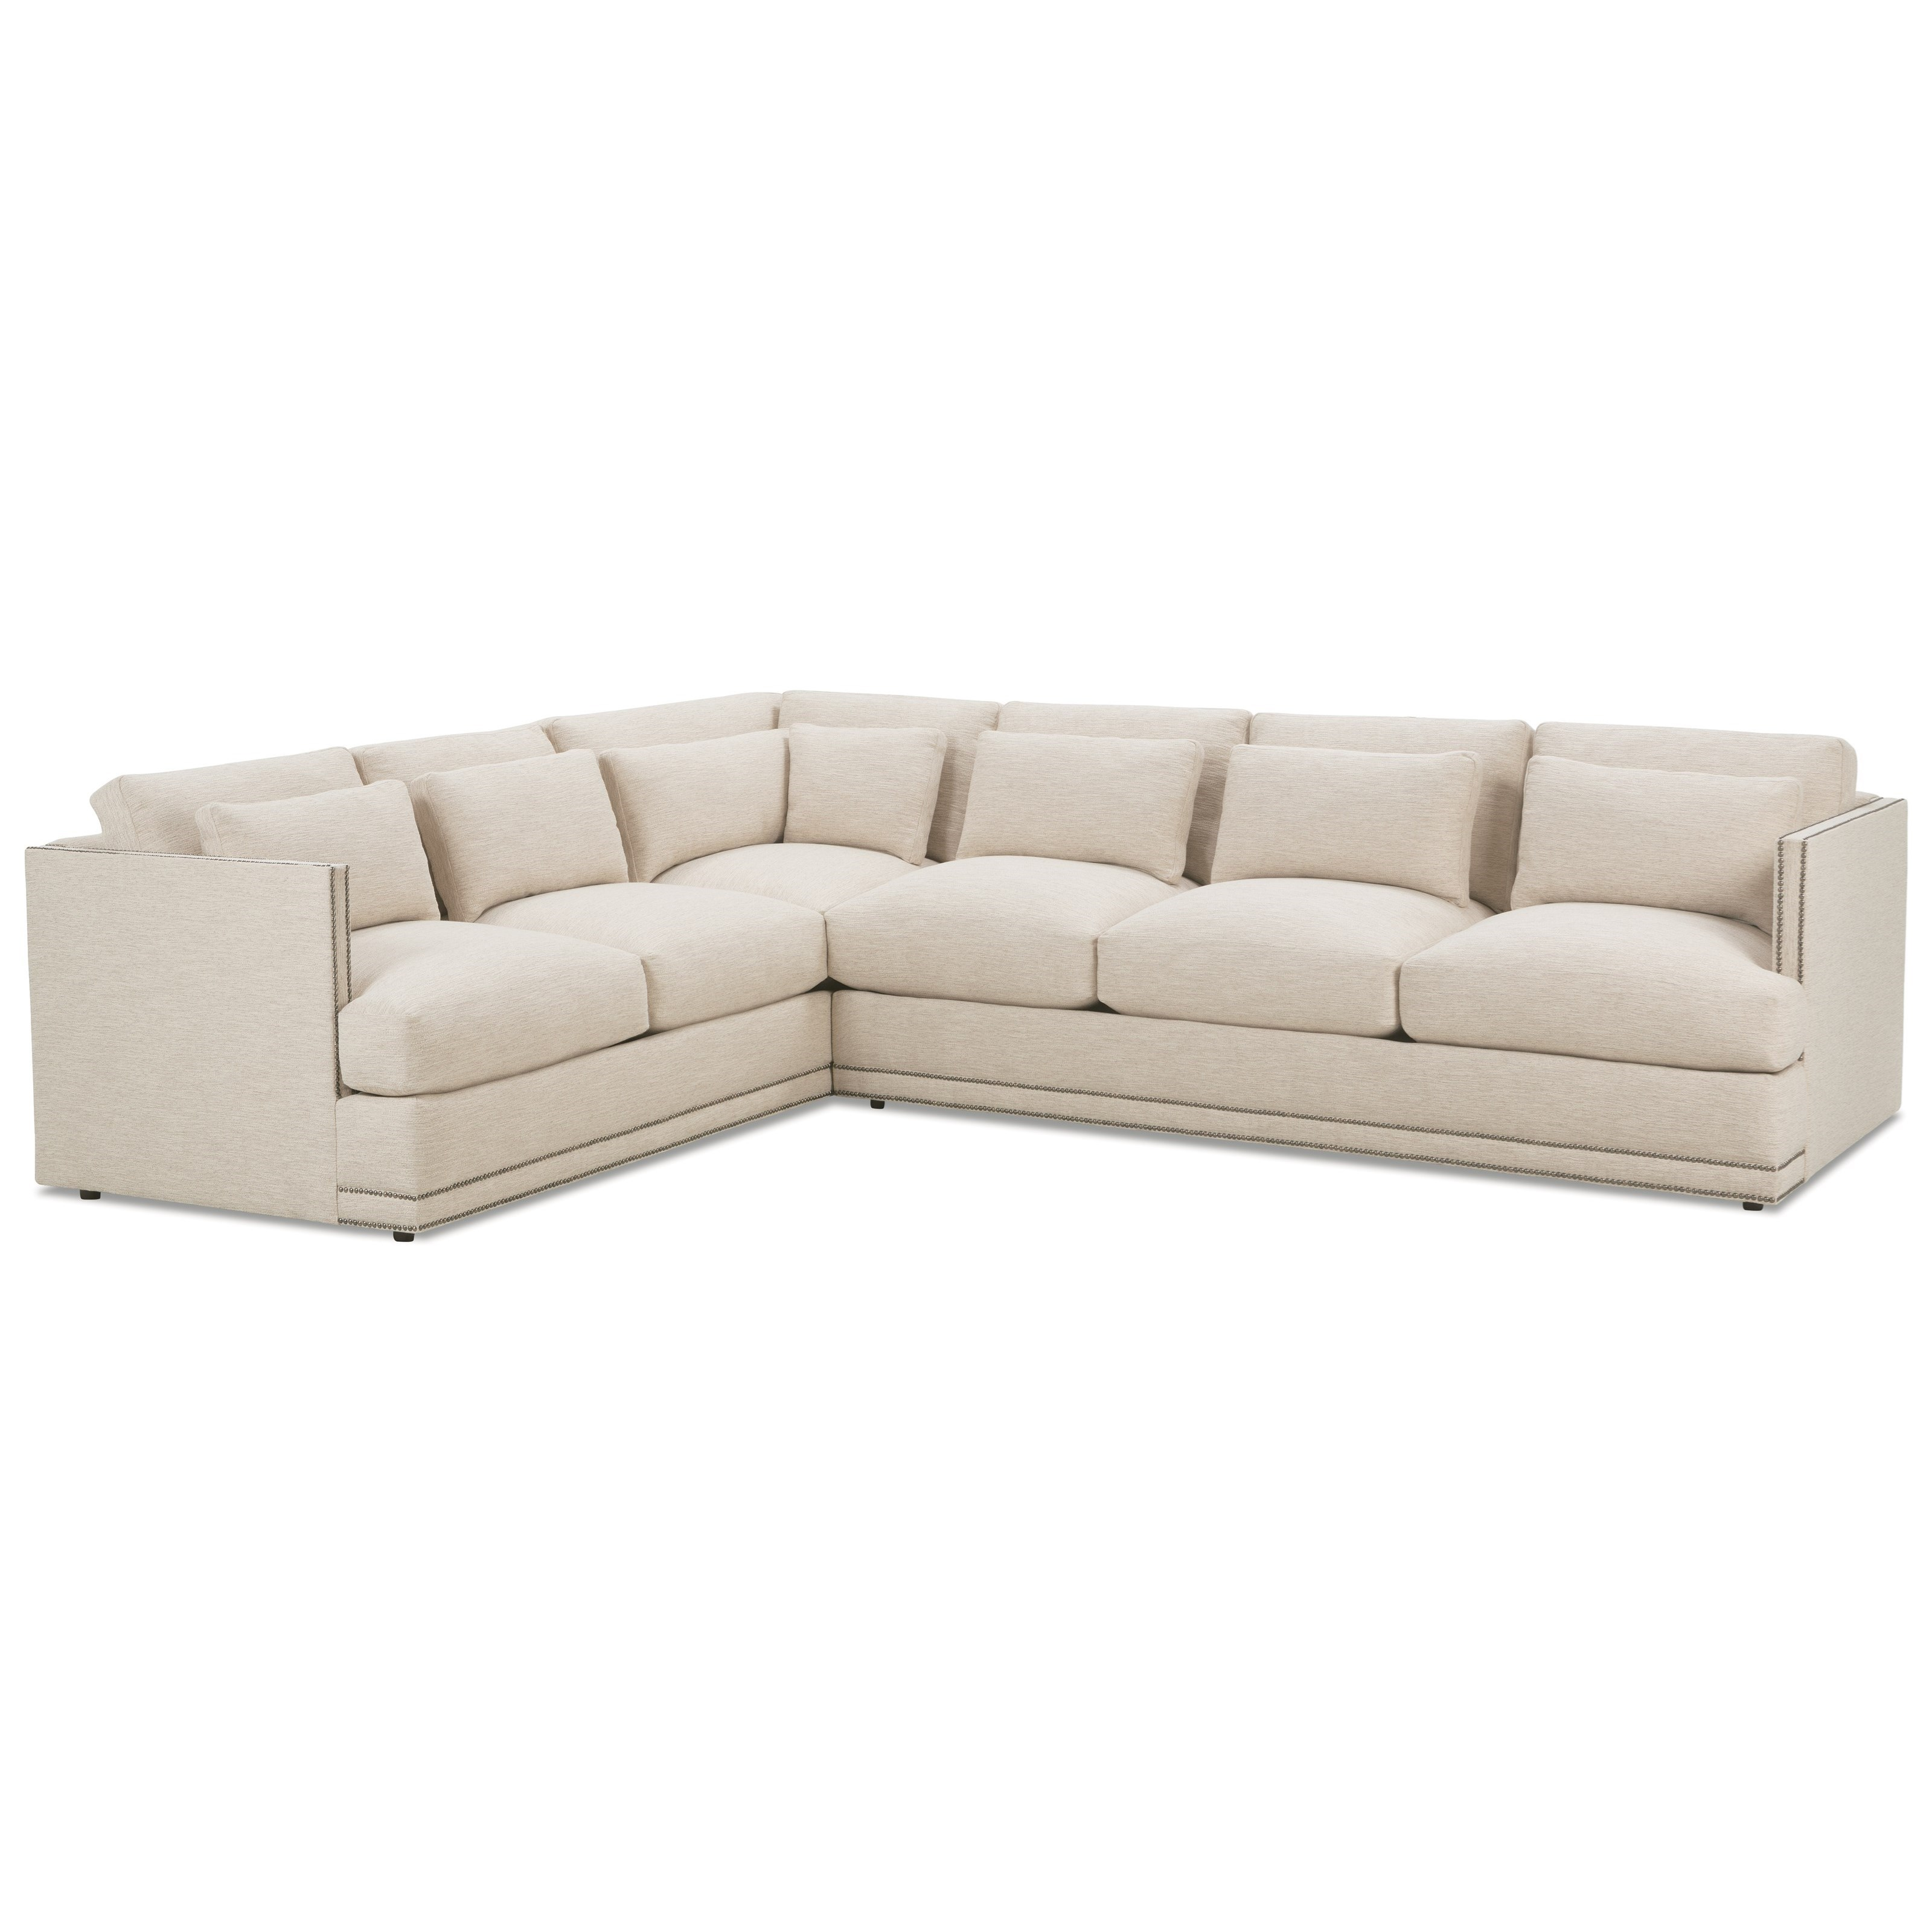 Oscar Contemporary Sectional Sofa Group By Robin Bruce At Reeds Furniture